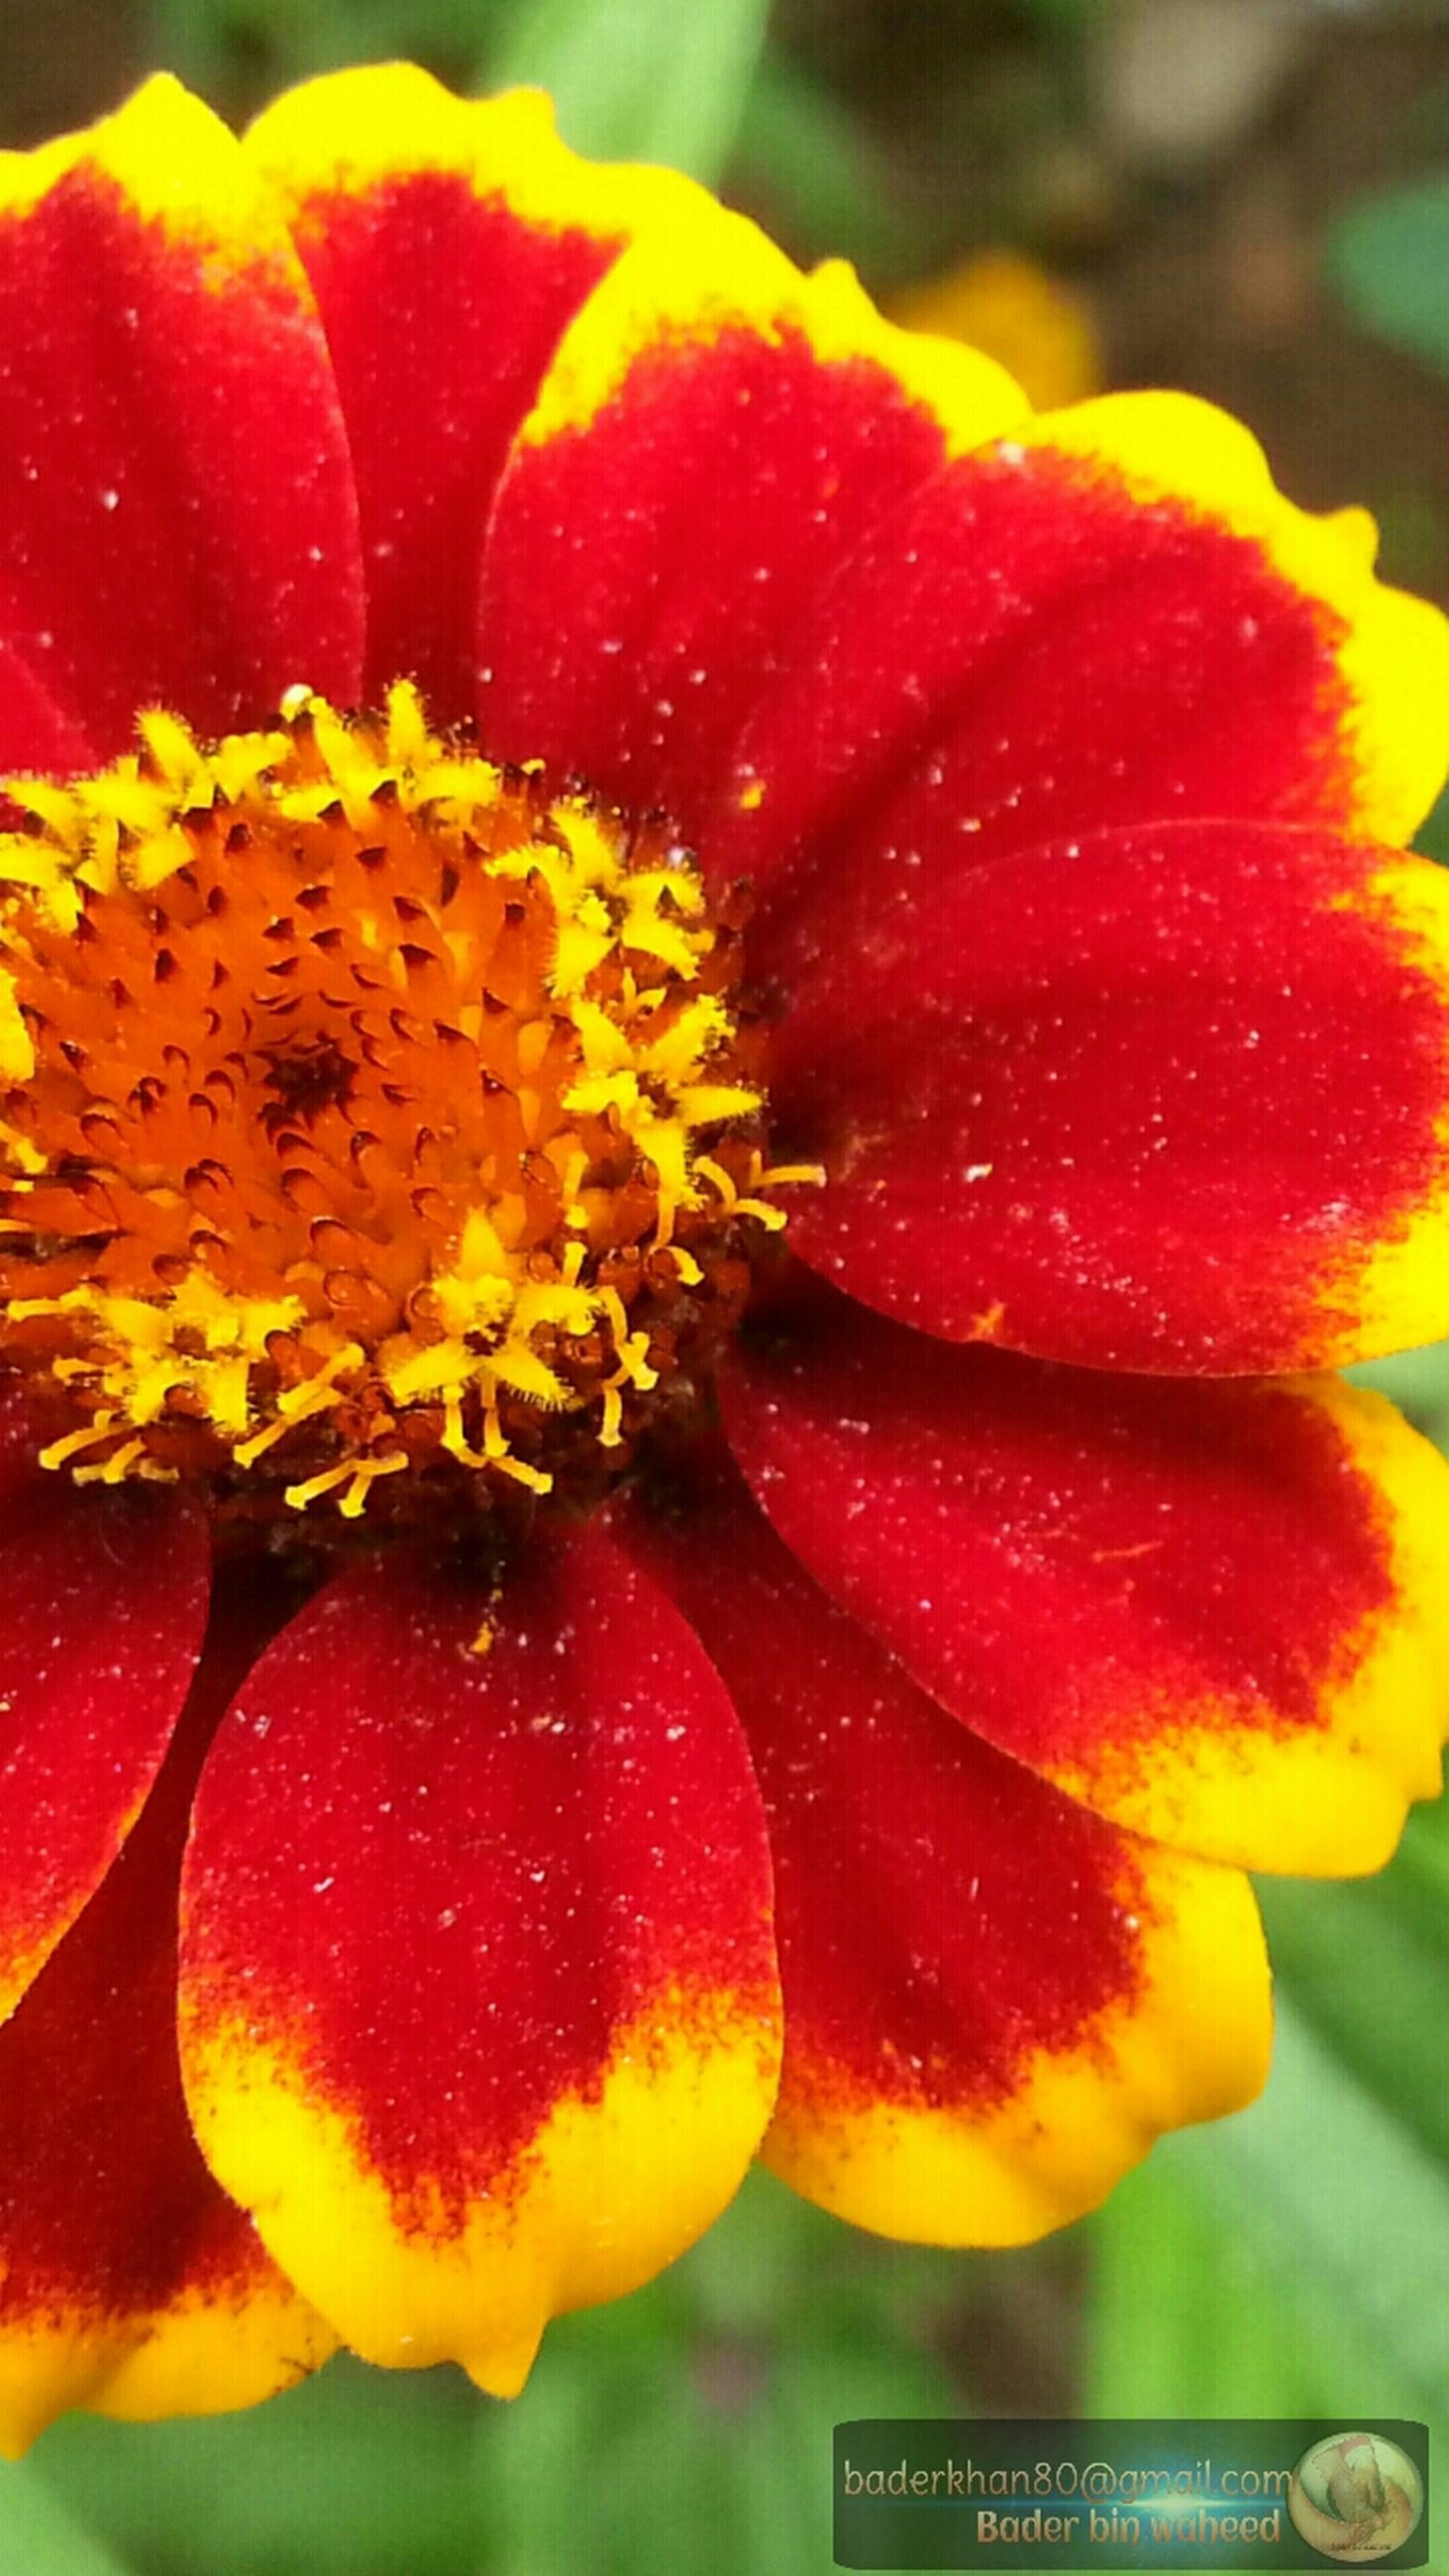 freshness, flower, flower head, yellow, petal, close-up, fragility, drop, red, beauty in nature, stamen, wet, growth, vibrant color, single flower, pollen, orange color, water, nature, selective focus